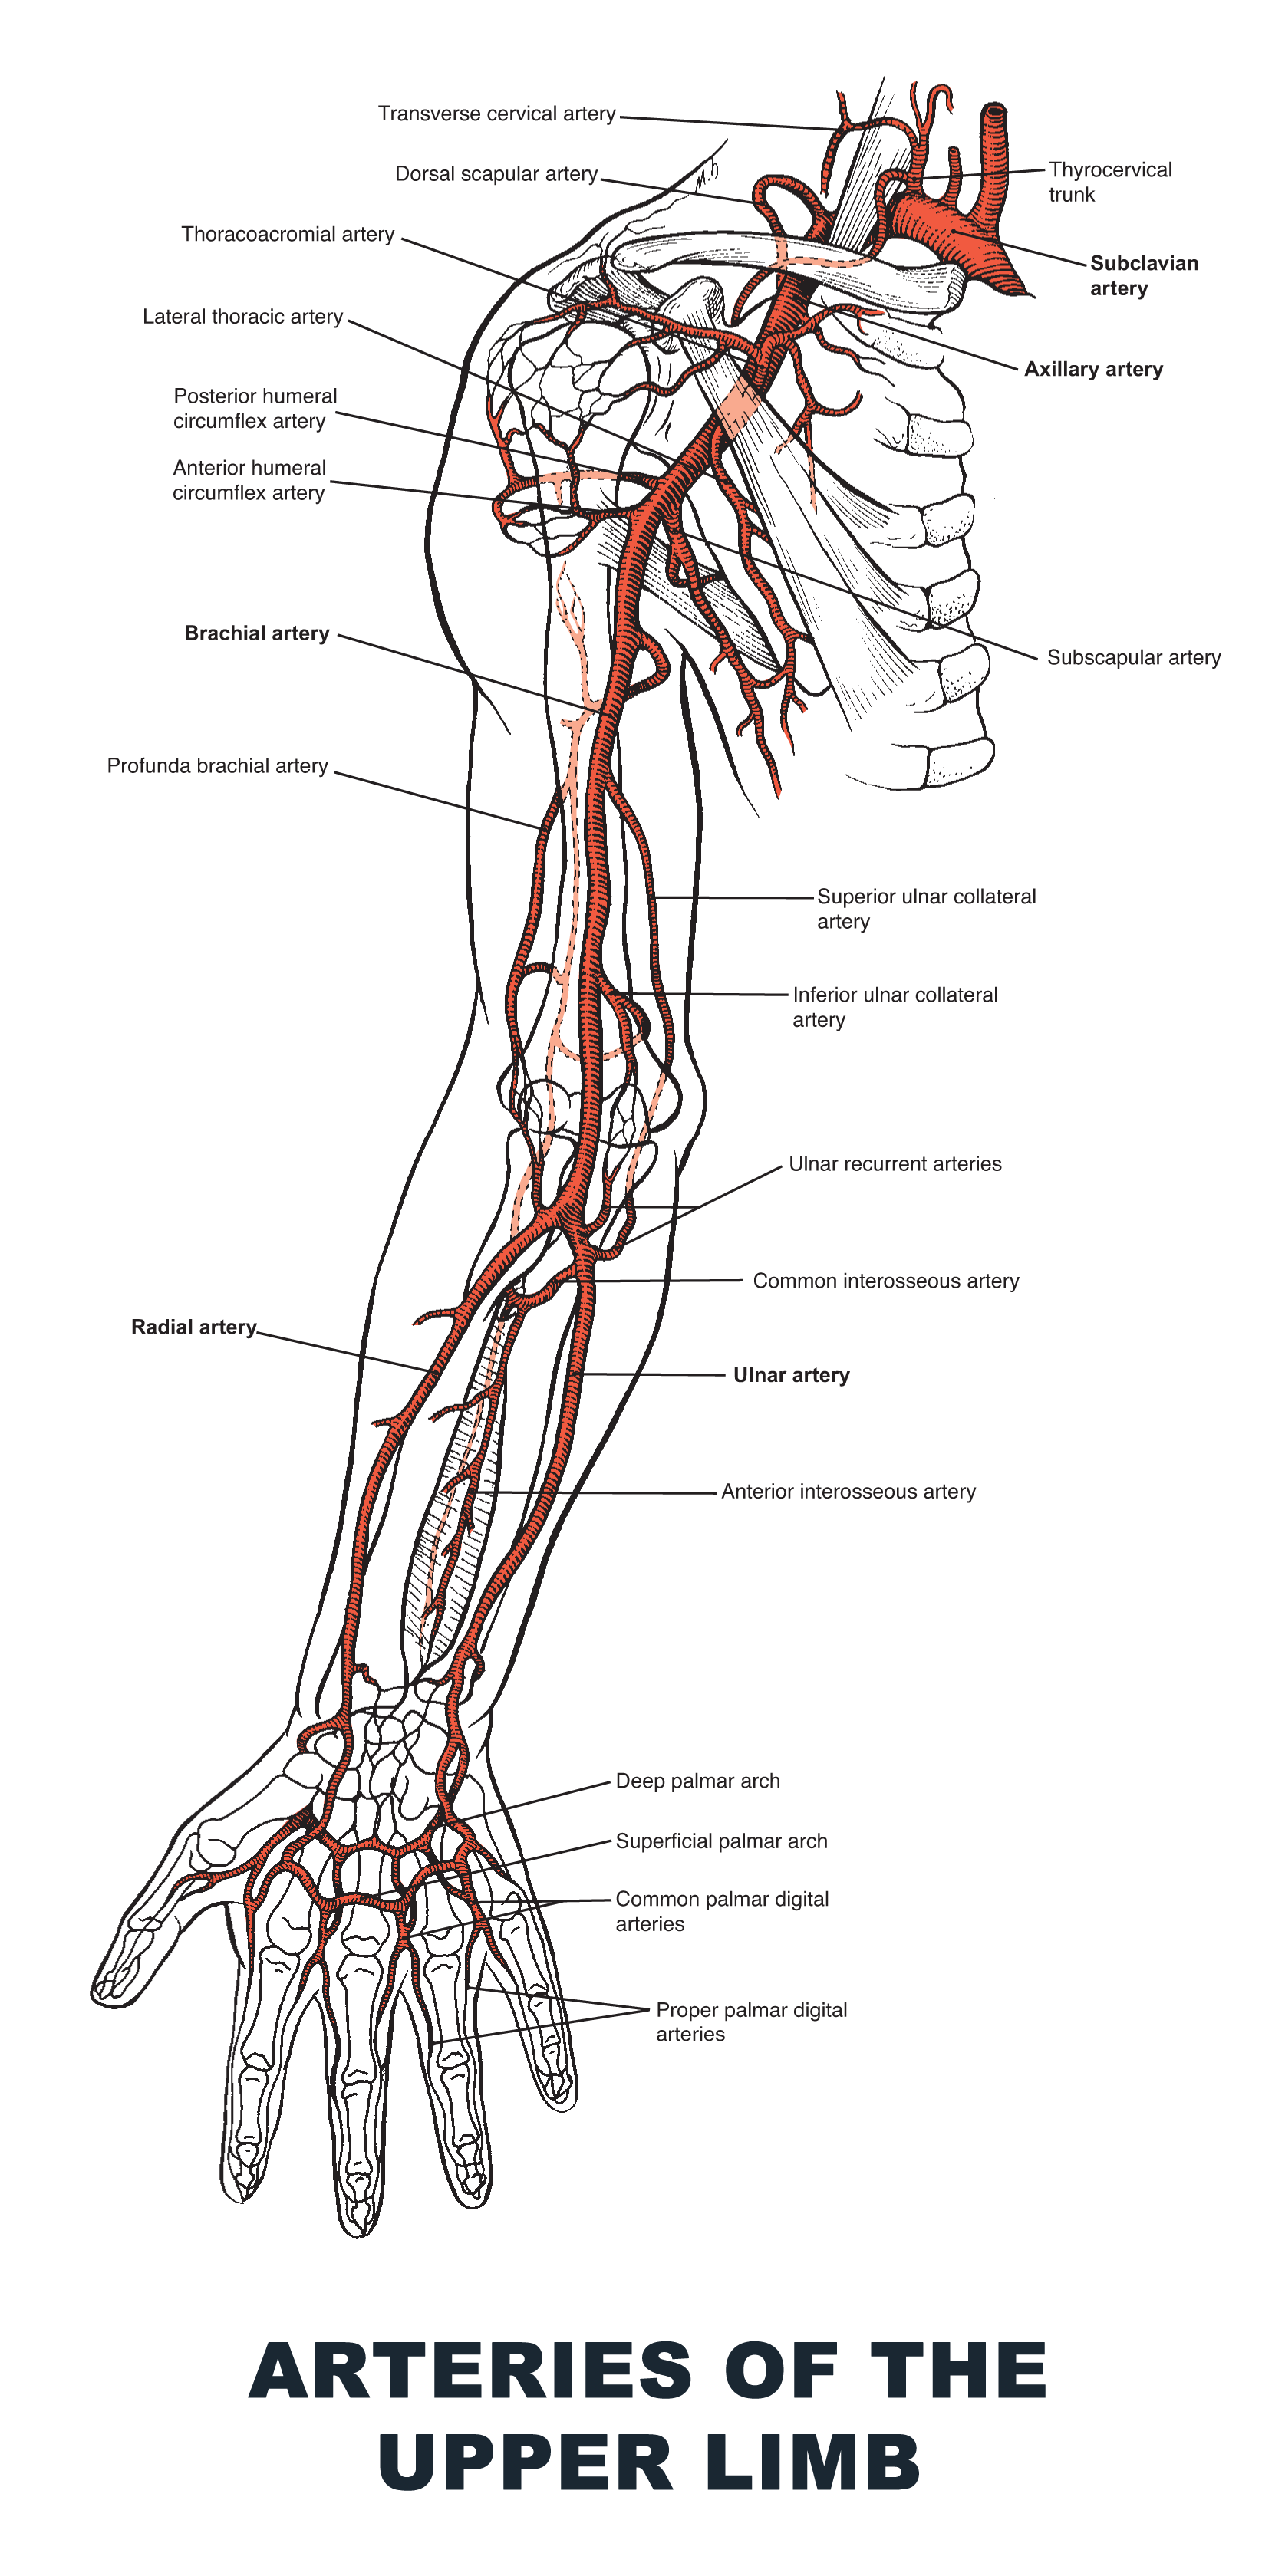 Arteries of the Upper Limb - #anatomy images illustrations #anatomy ...